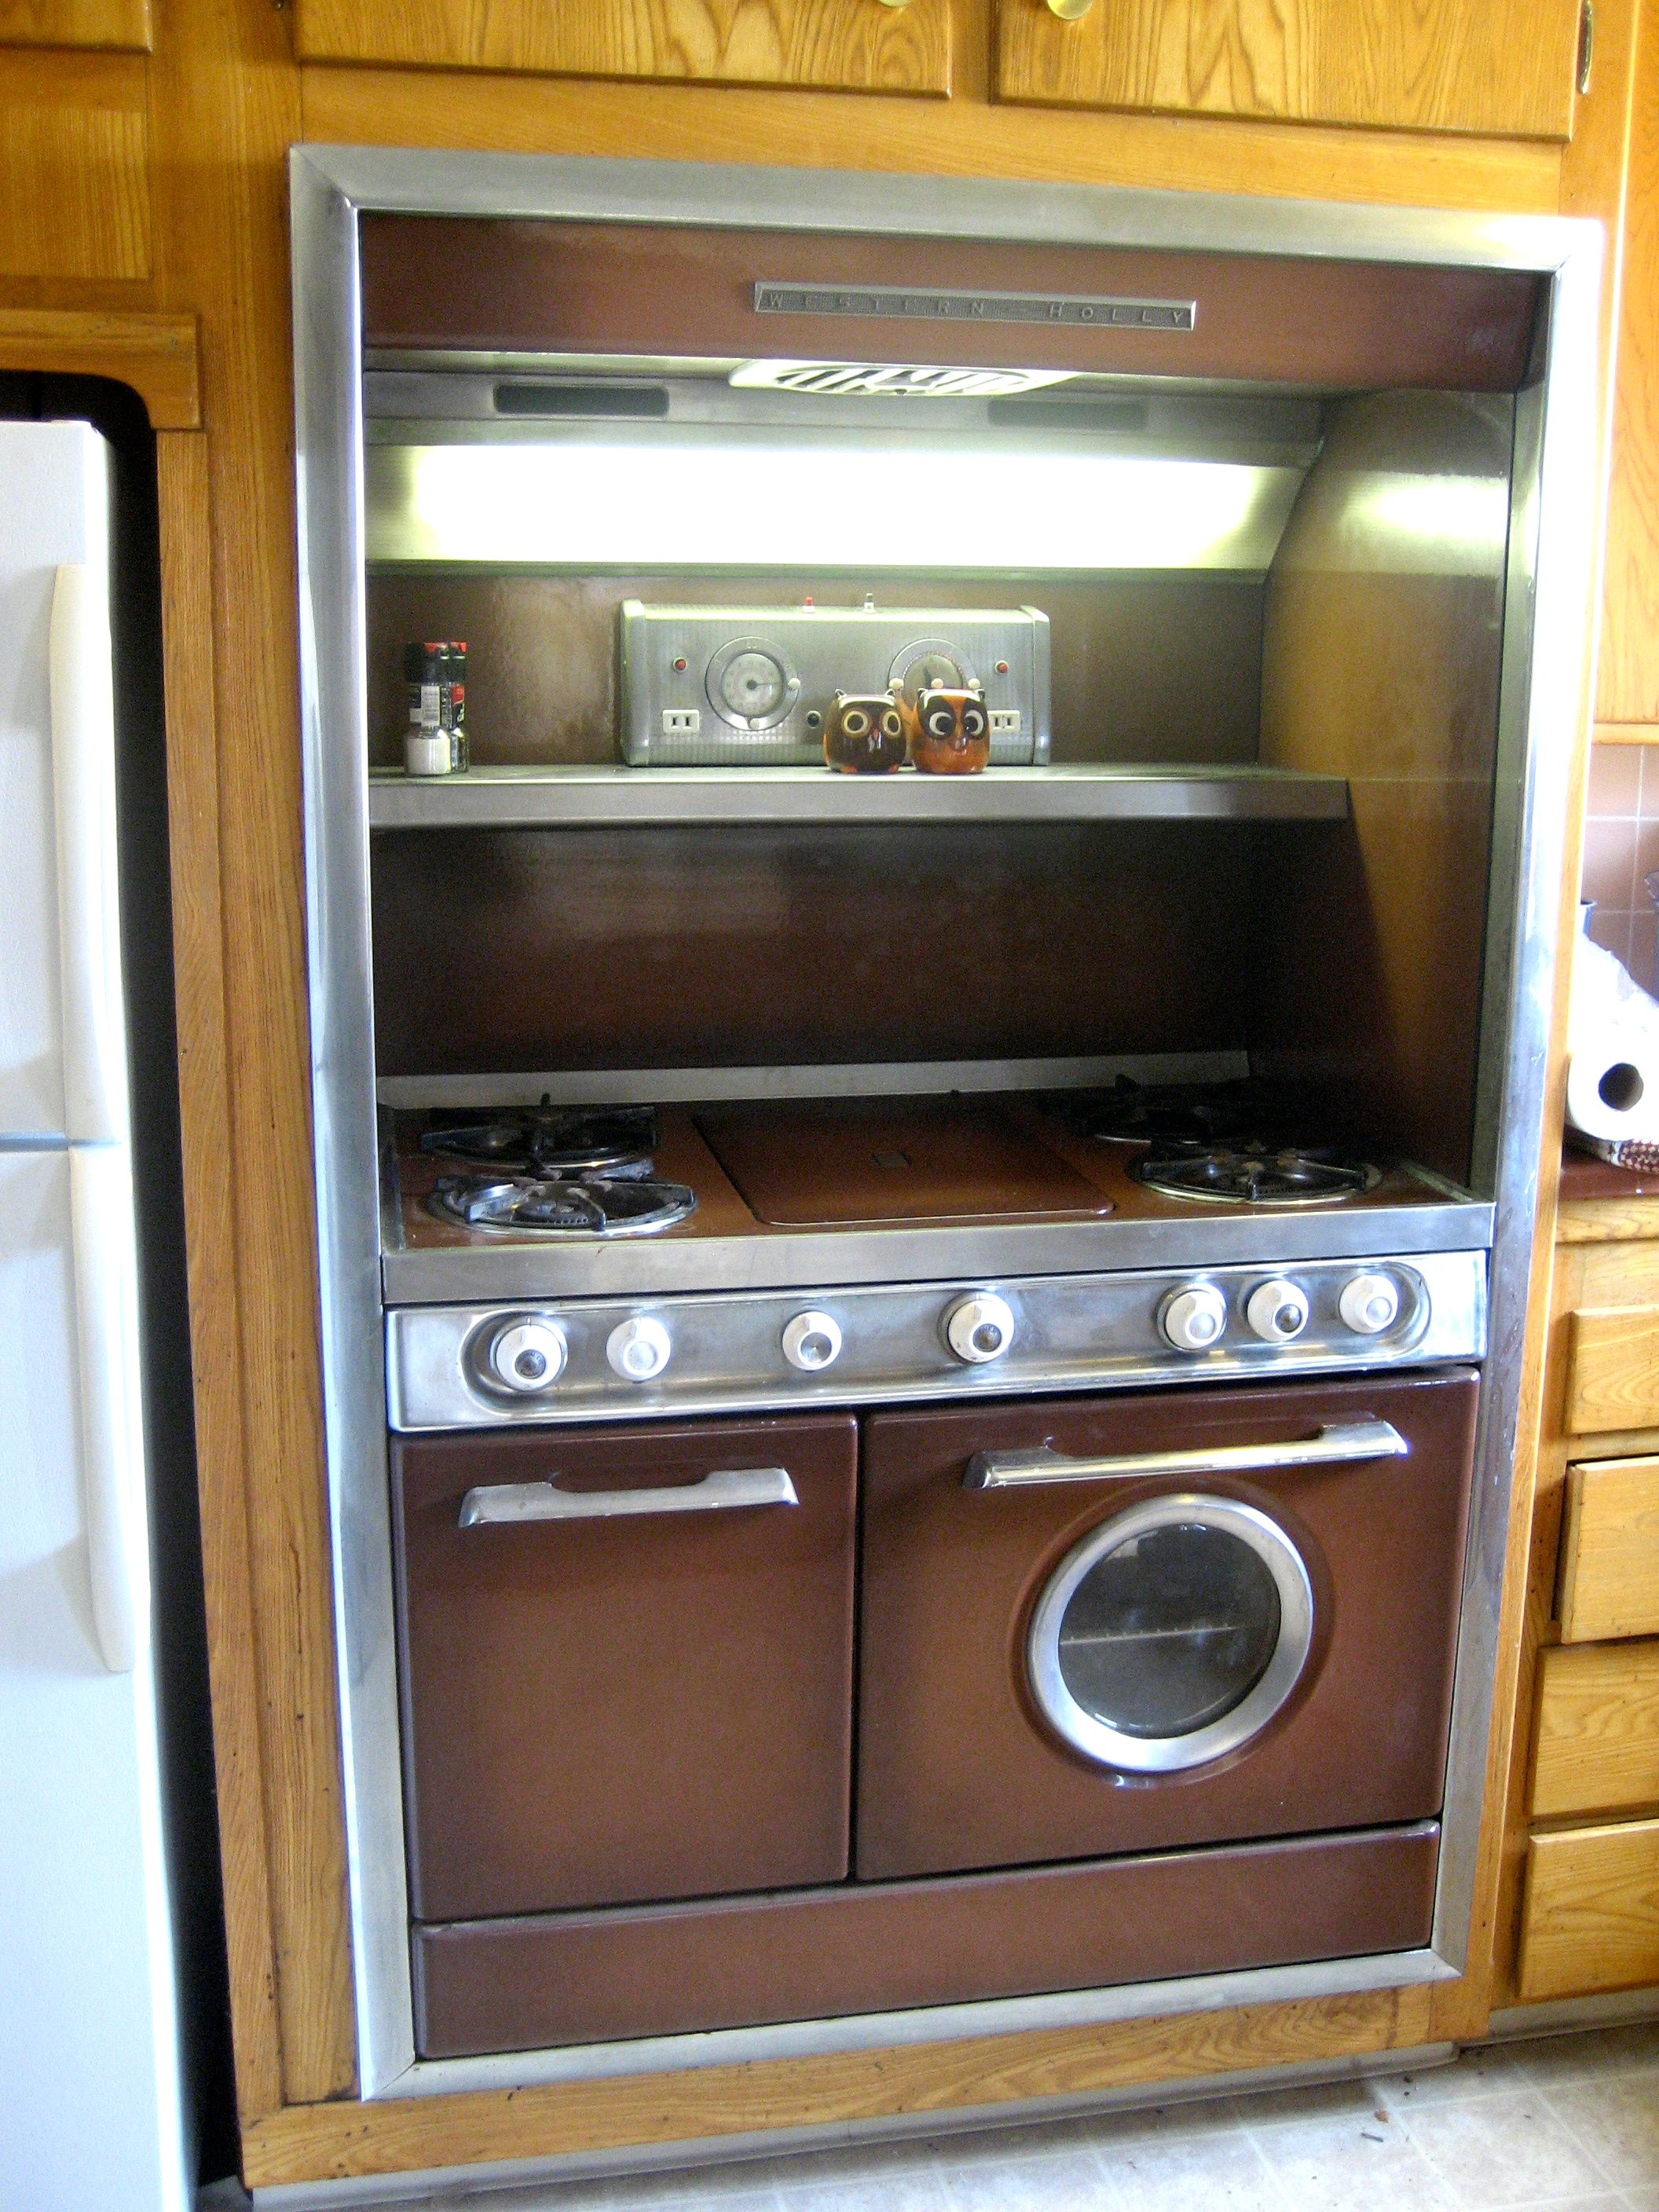 208 pictures of vintage stoves, refrigerators and large appliances